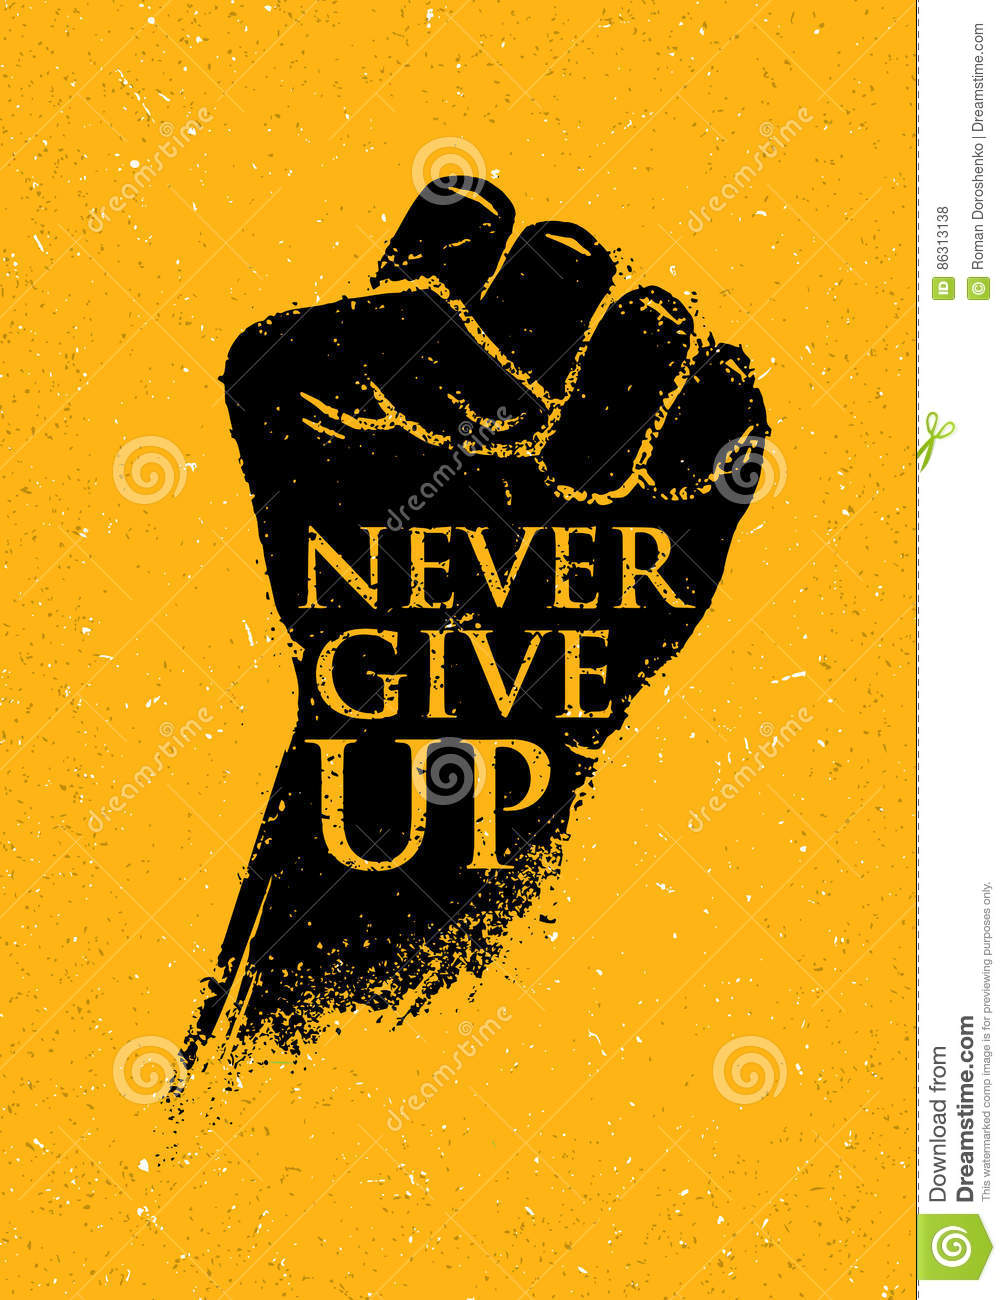 Never Give Up Motivation Poster Concept Creative Grunge Fist Vector